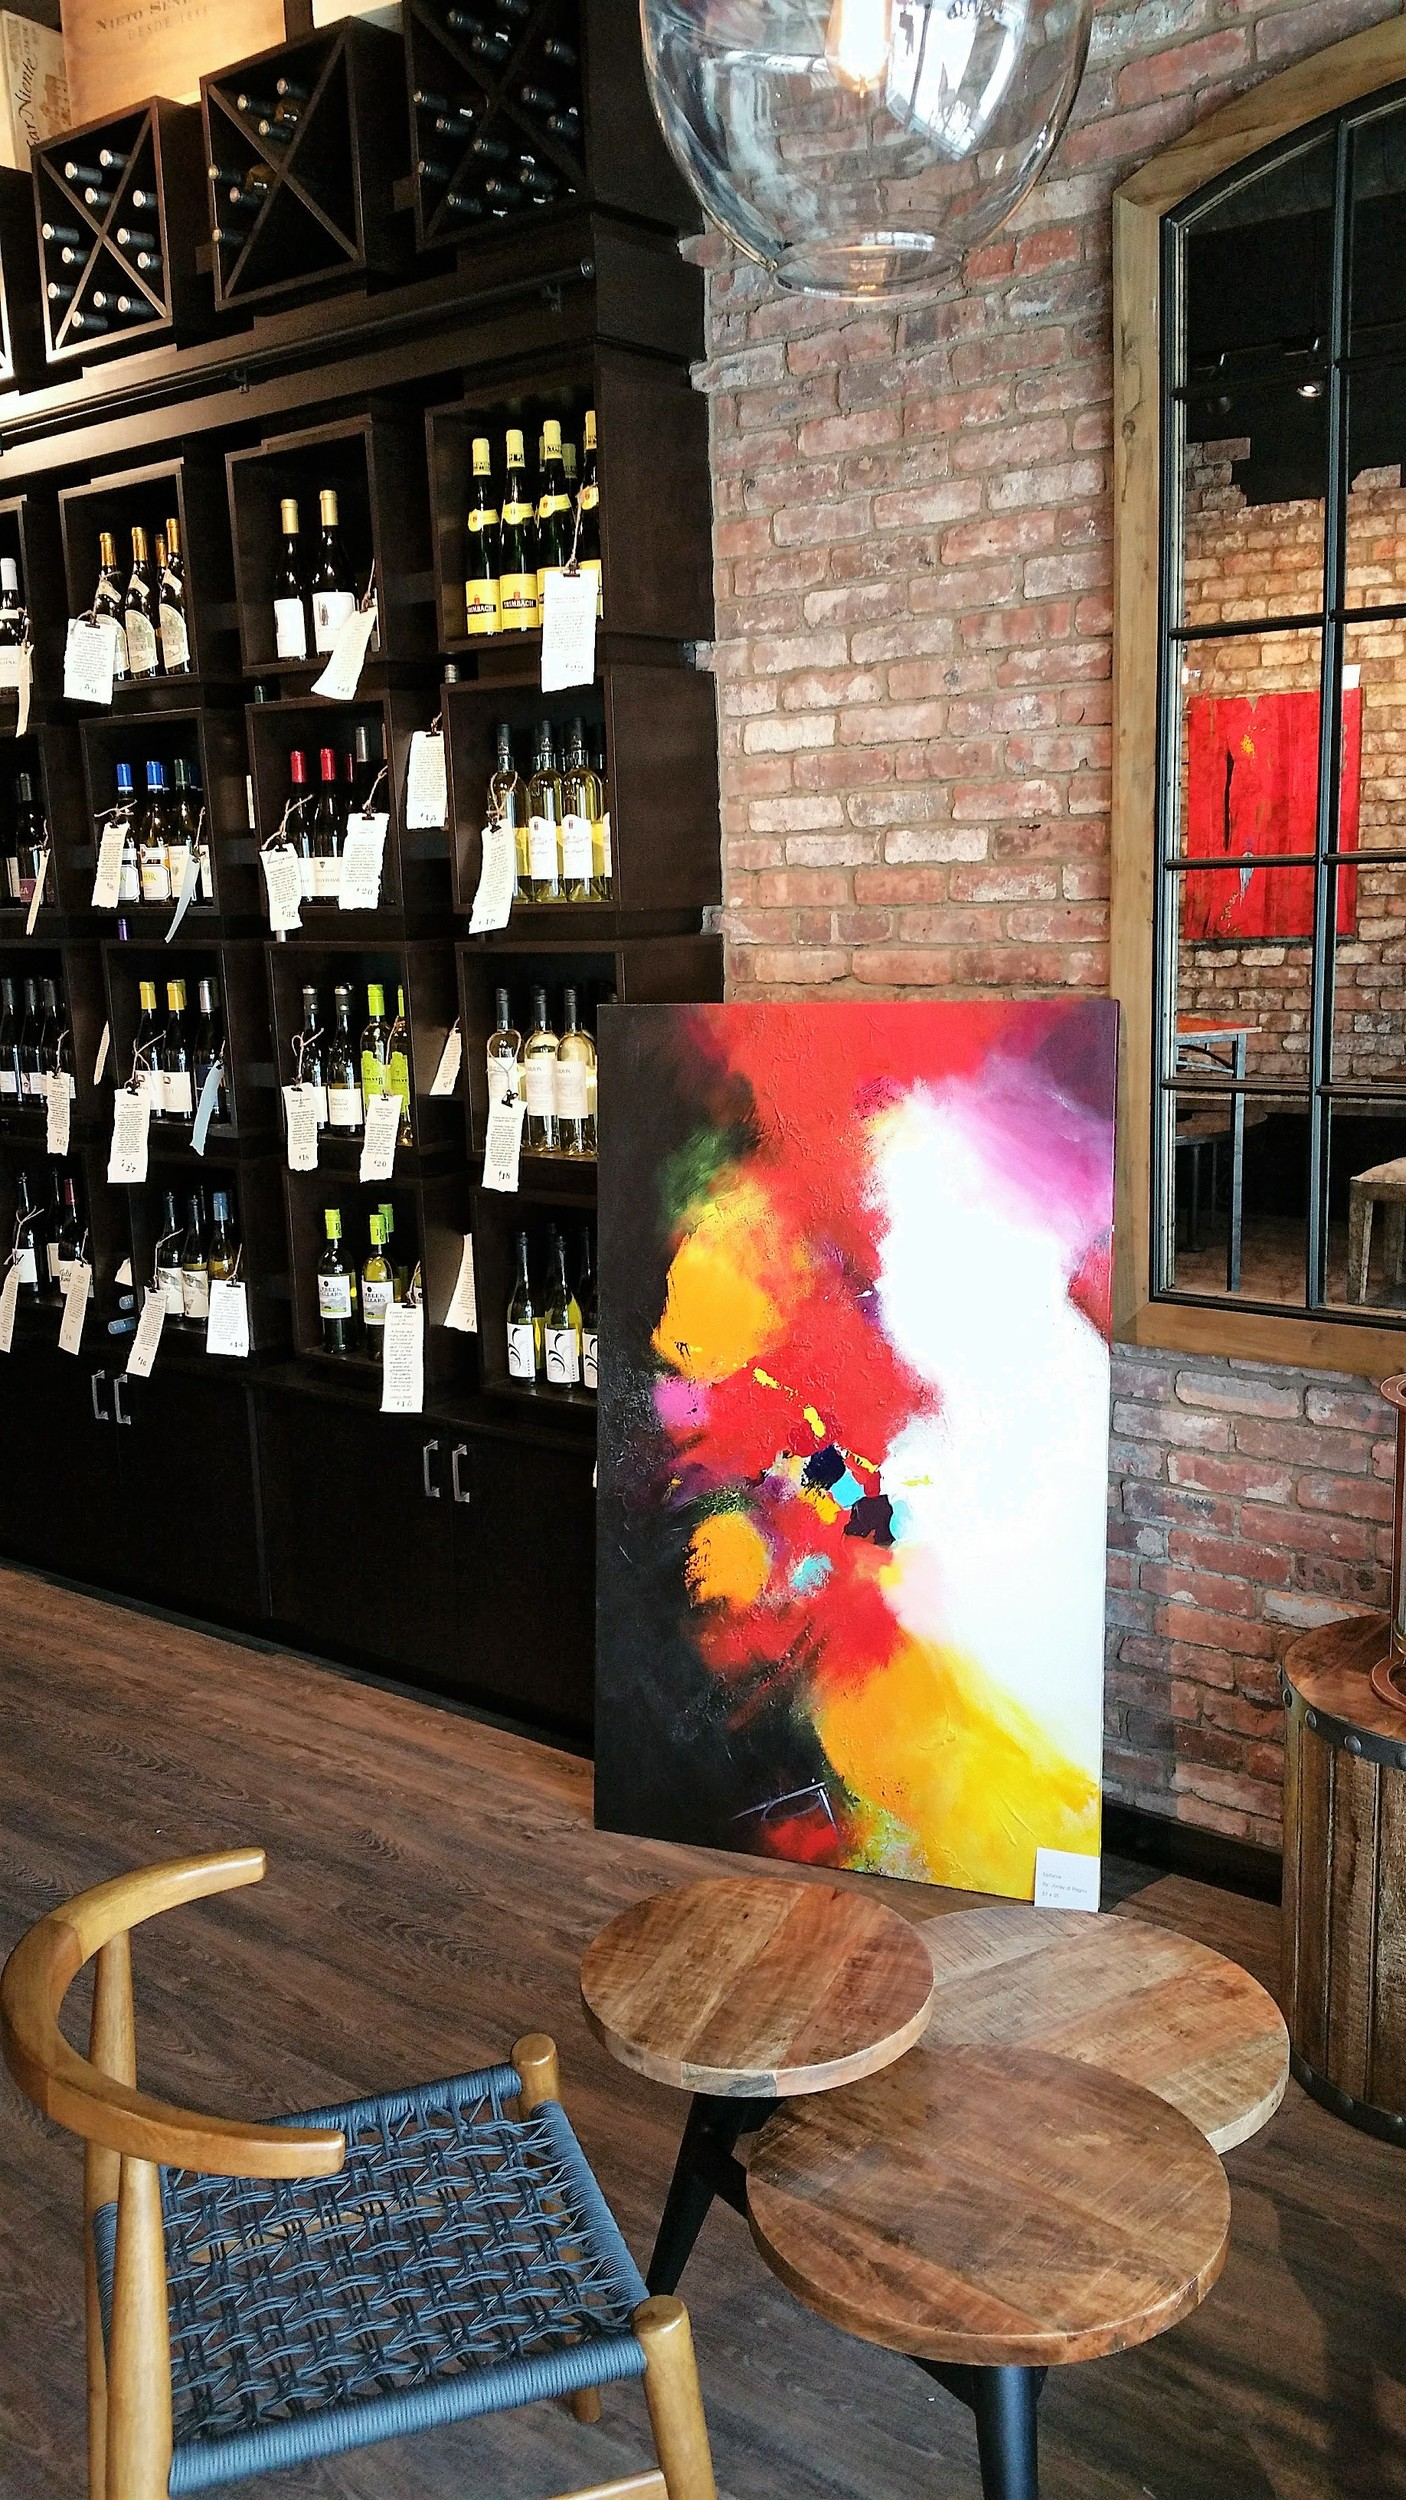 Ponte Vedra residents visited Coastal Wine Market & Tasting Room in Nocatee Nov. 12 to view the art of expressionist artist Jonay di Ragno.